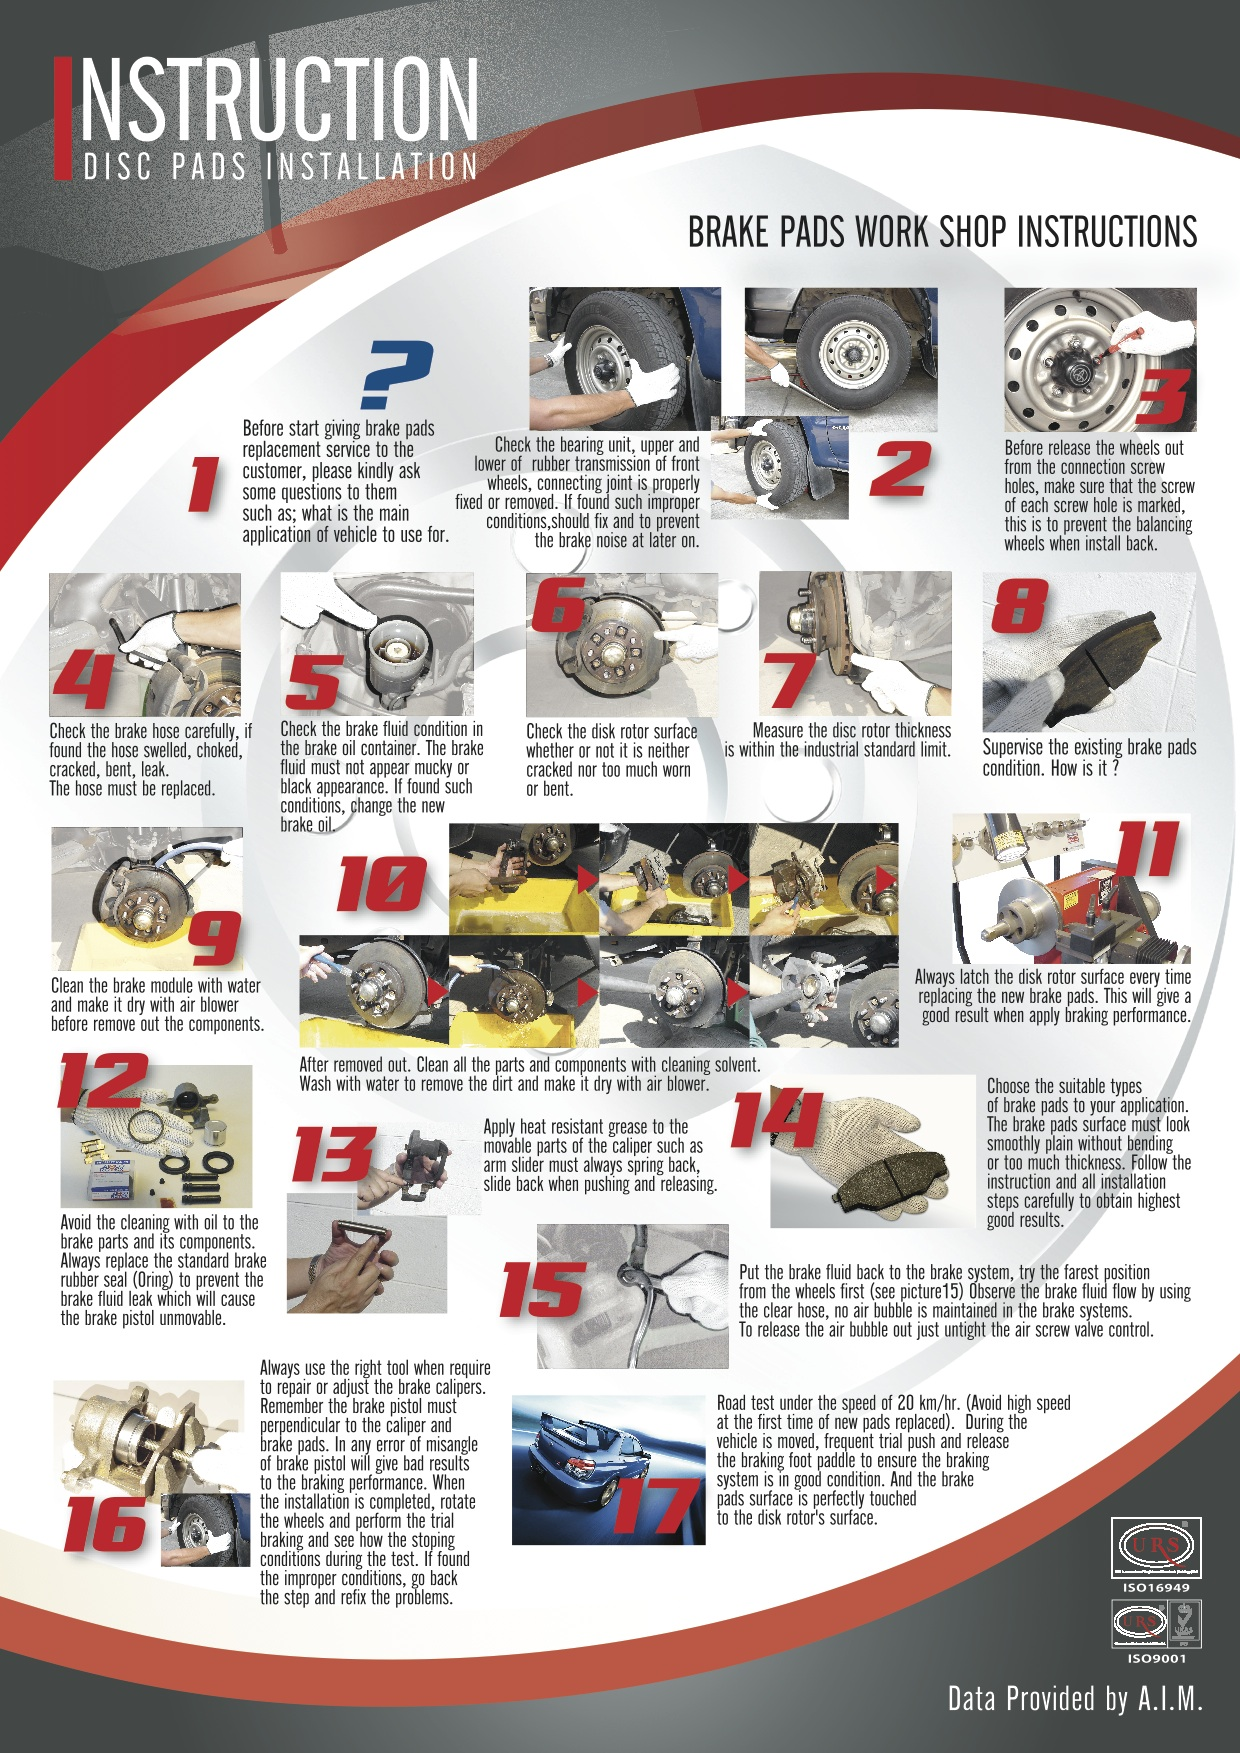 BRAKE PADS WORK SHOP INSTRUCTIONS